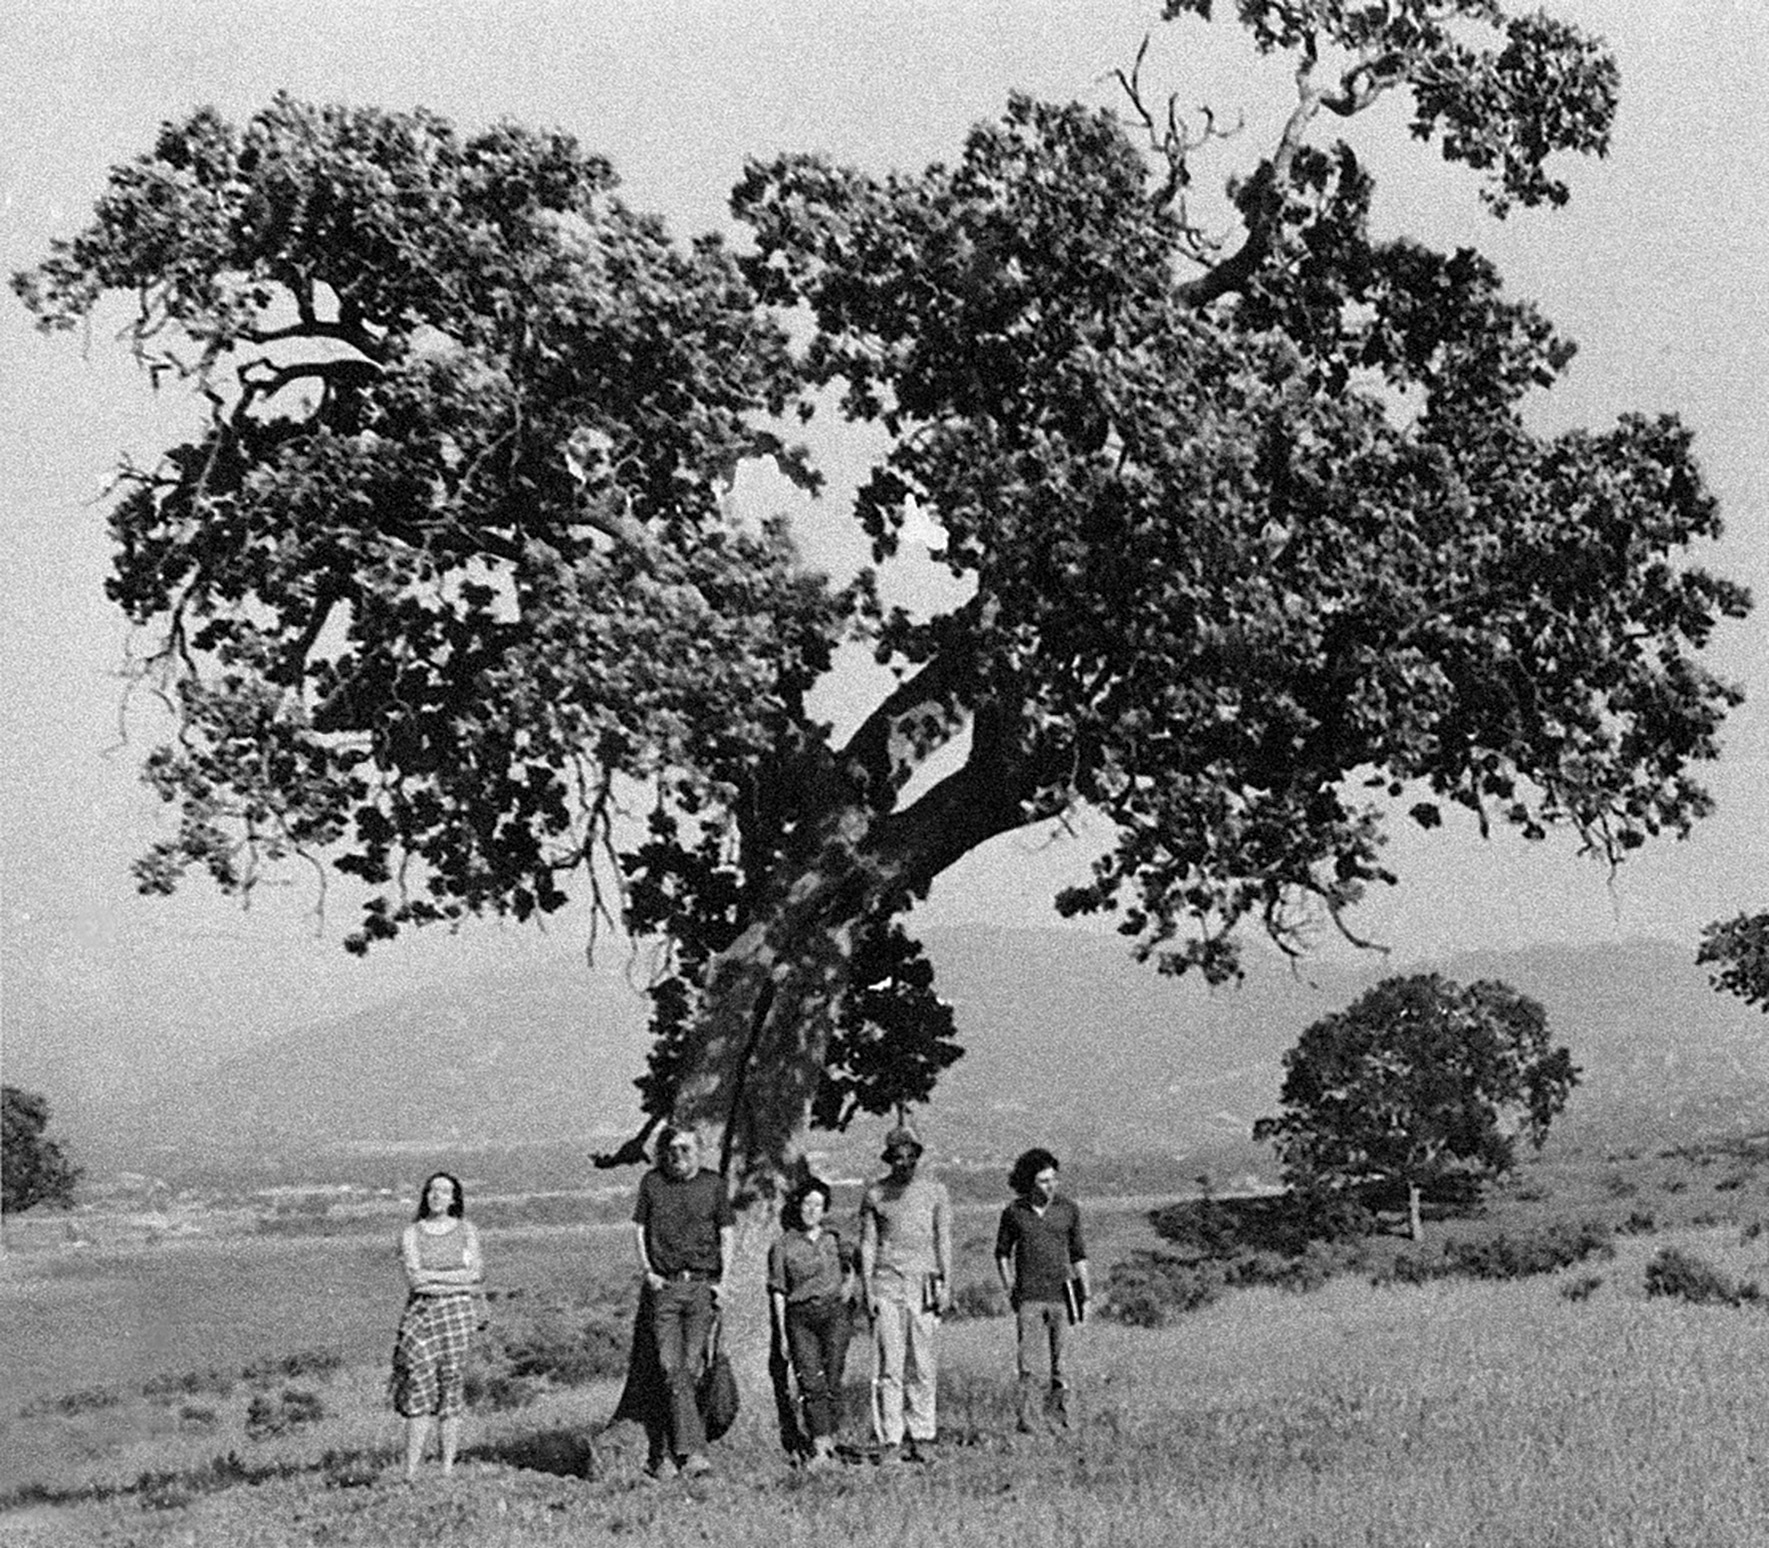 Baldessari (second from left) poses with students under a California live oak during a class